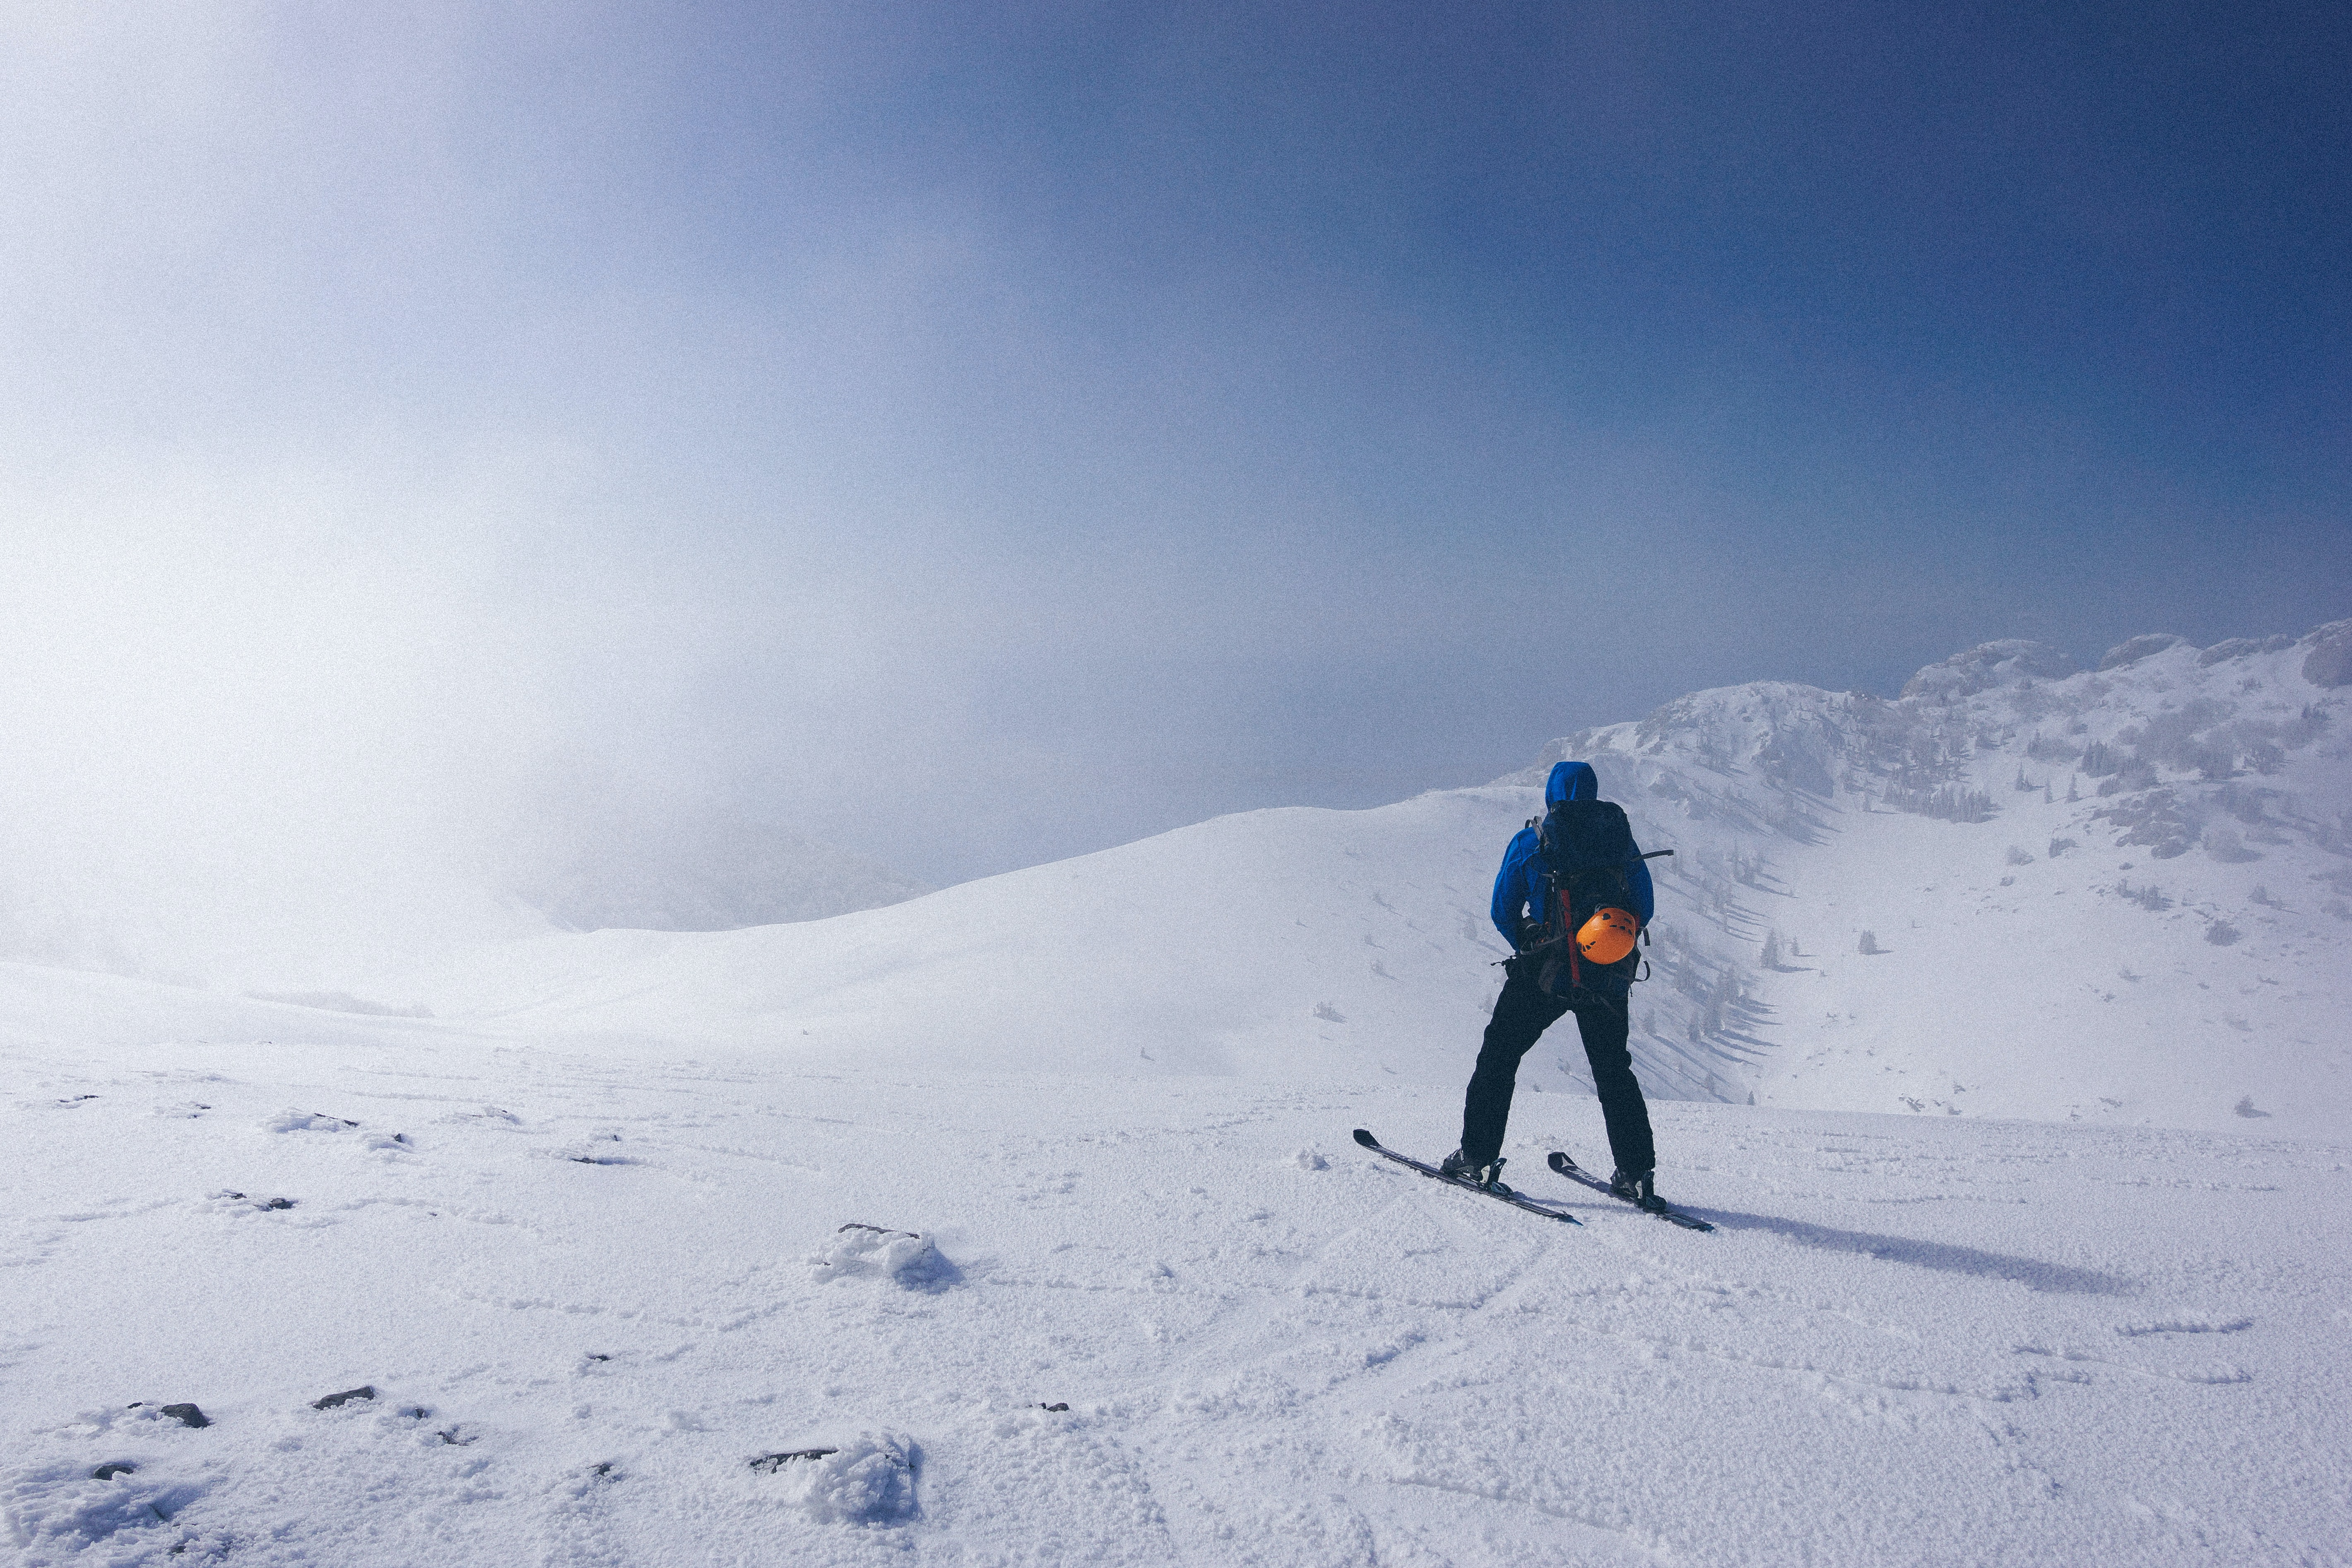 A man walking in skis on a slight slope near medium-sized mountains